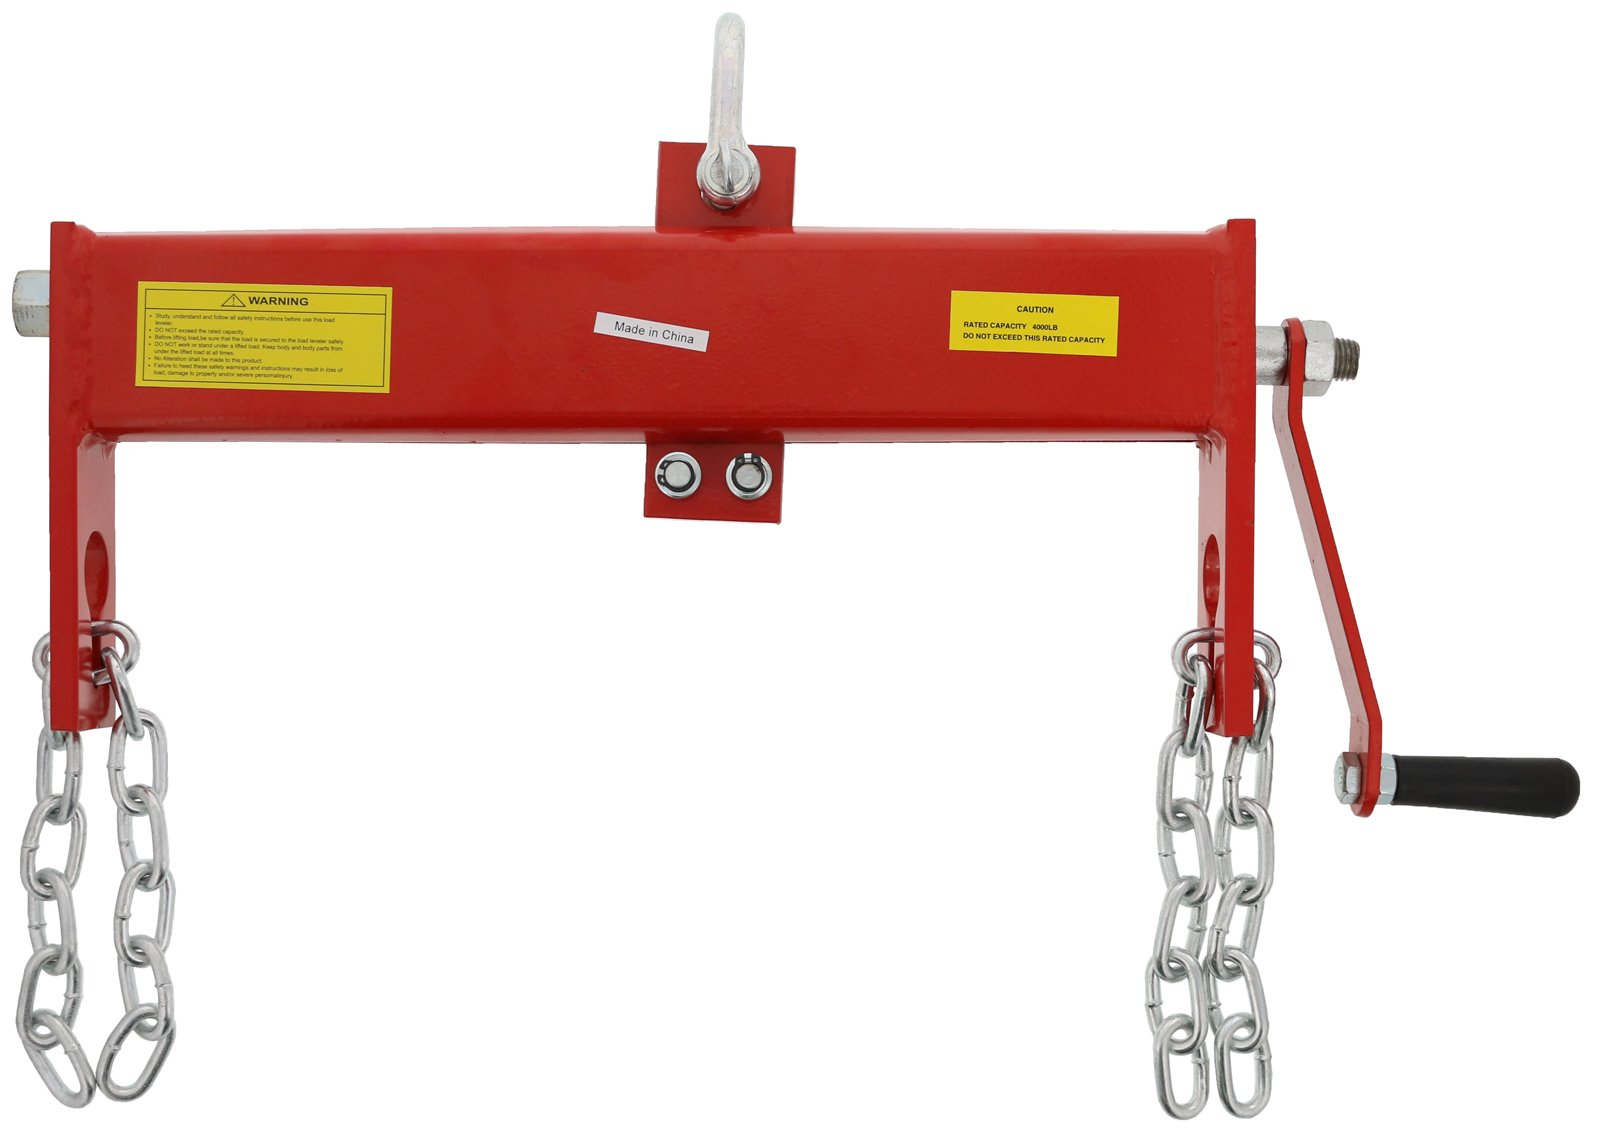 Heavy Duty Steel 2 Ton (4000 lb) Load Leveler for use with Engine Hoist/Crane by Dragway Tools